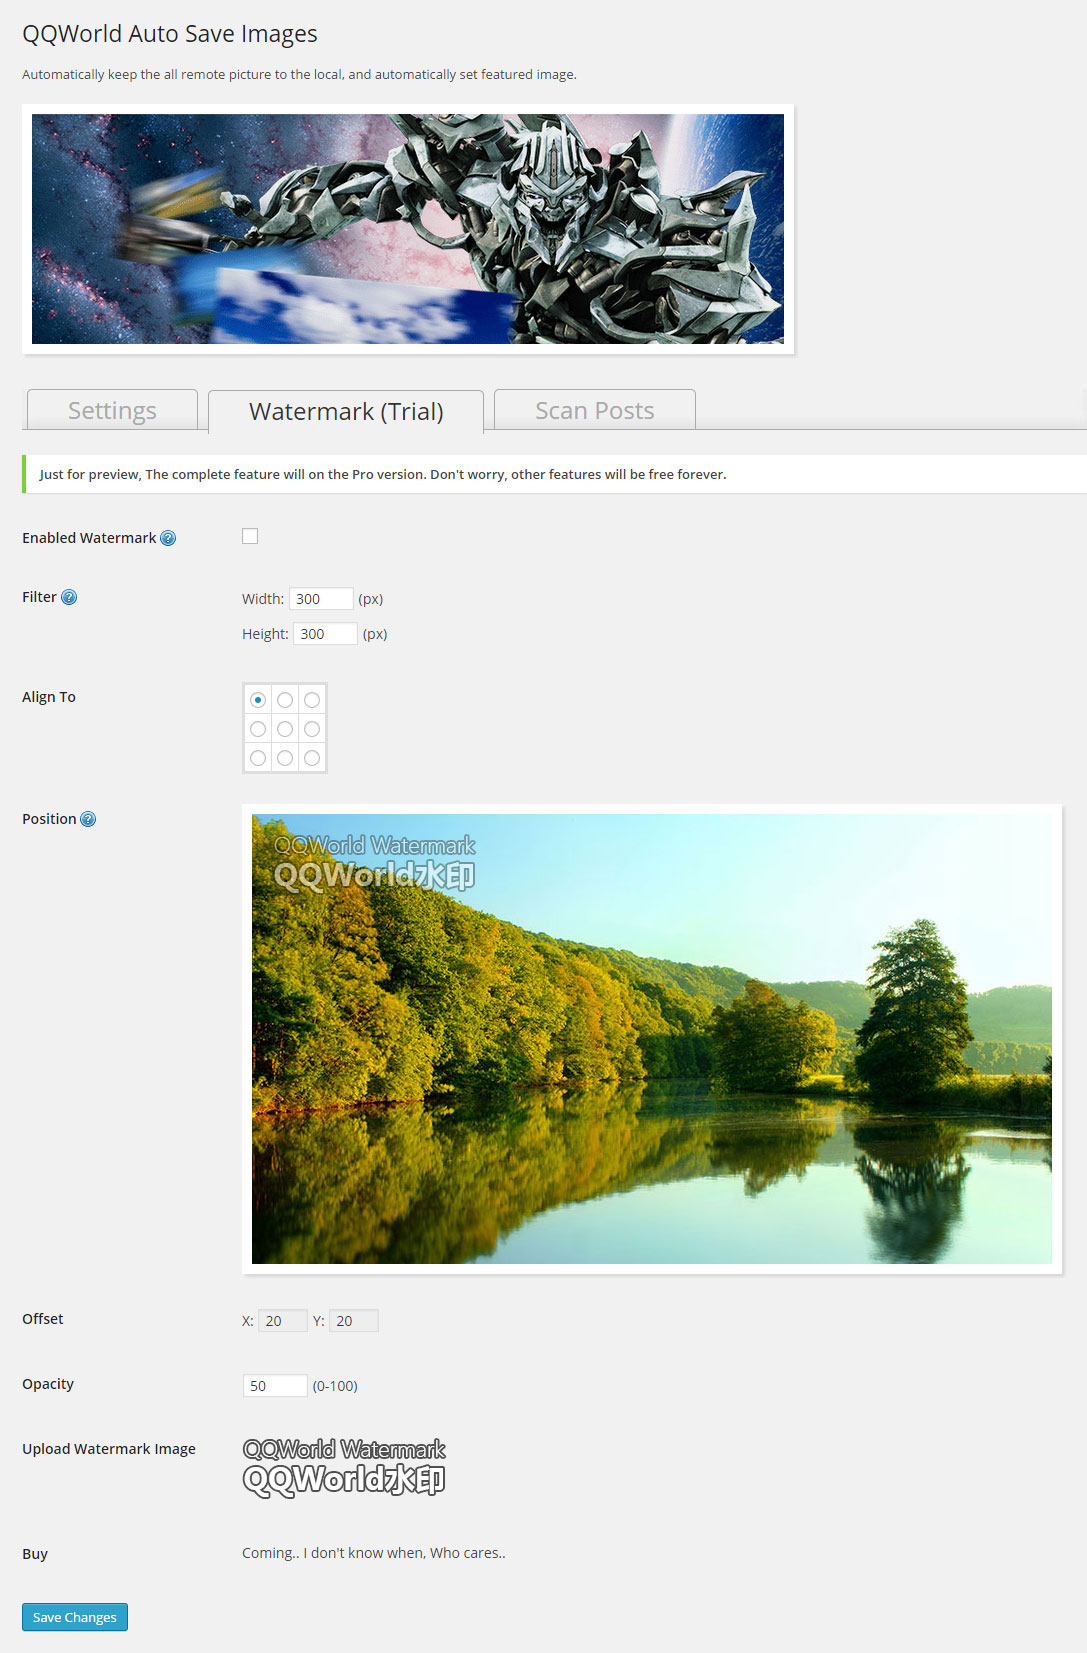 User interface - Preview watermark feature